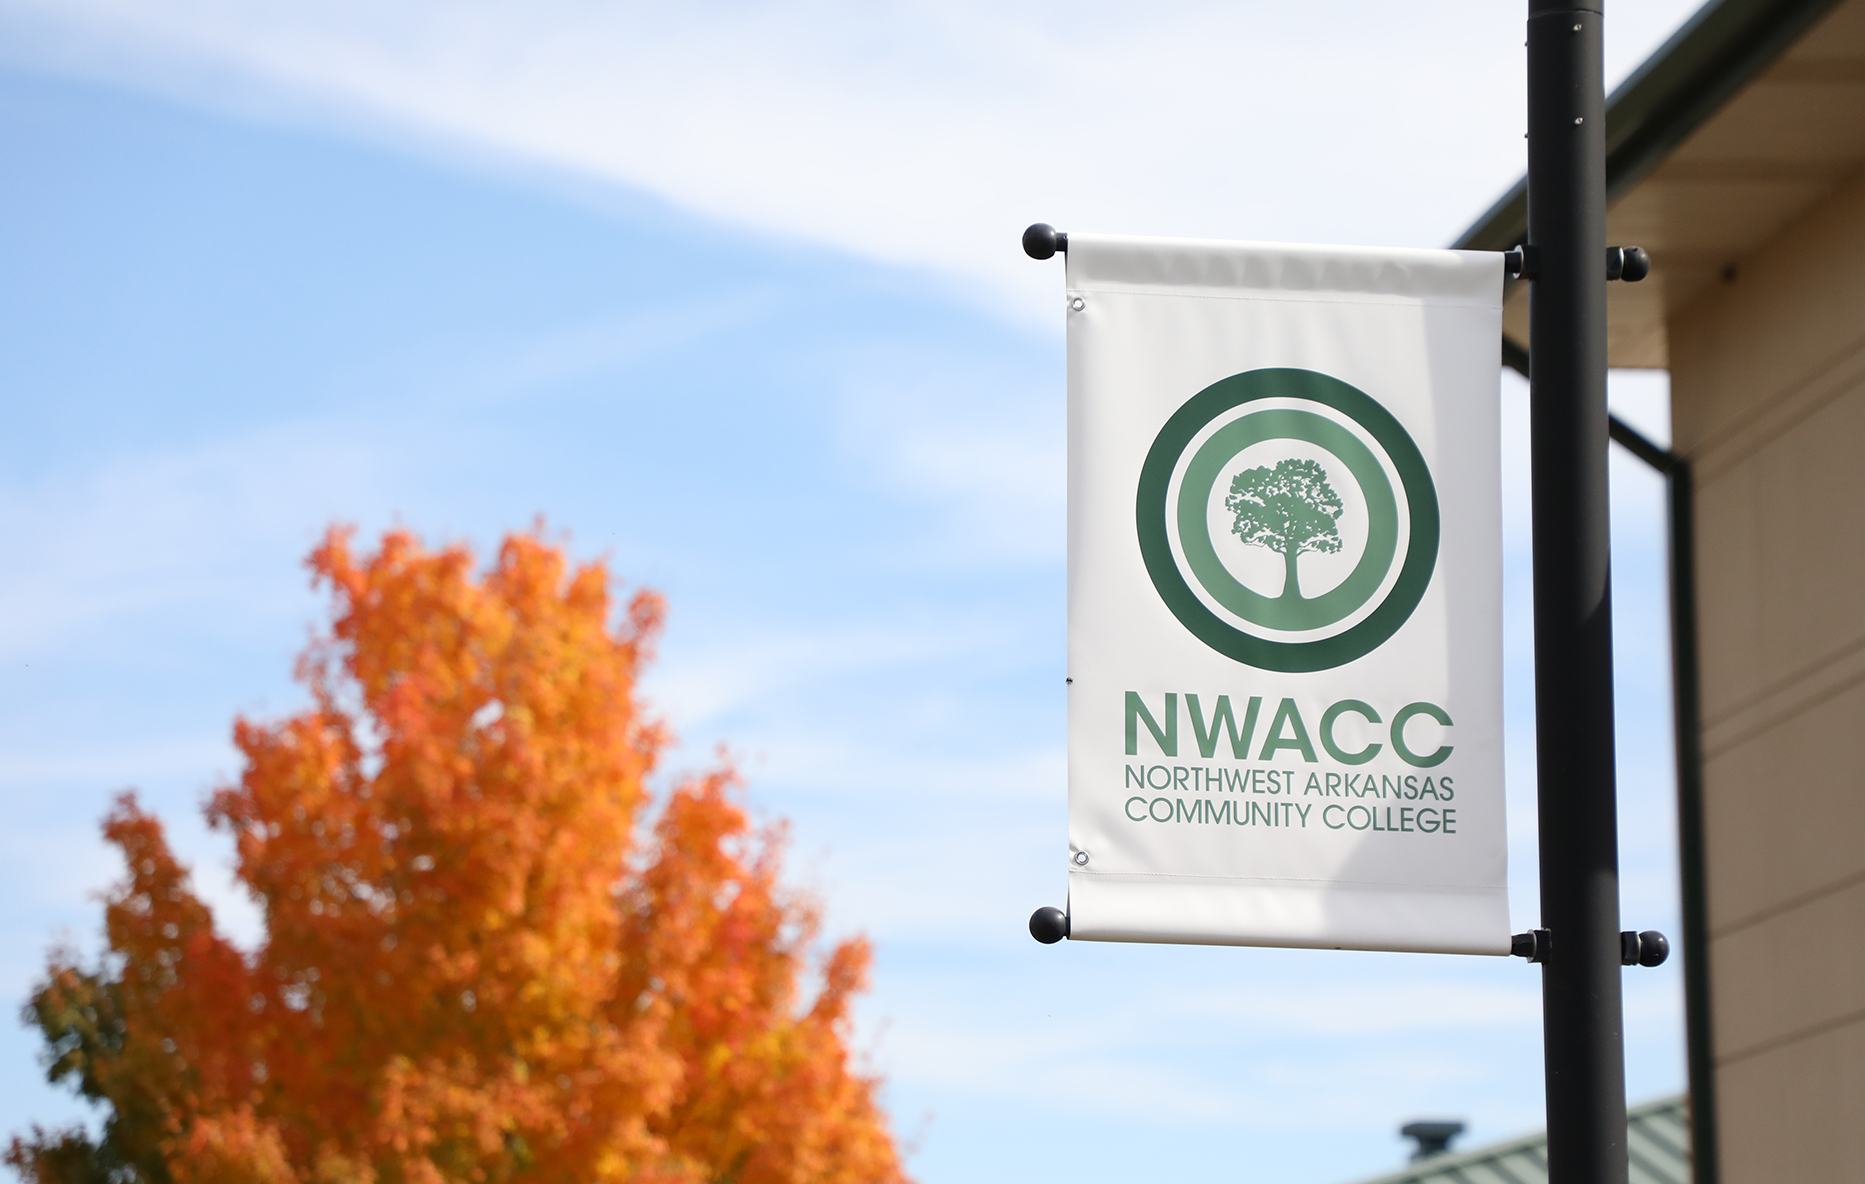 NWACC sign pole banner